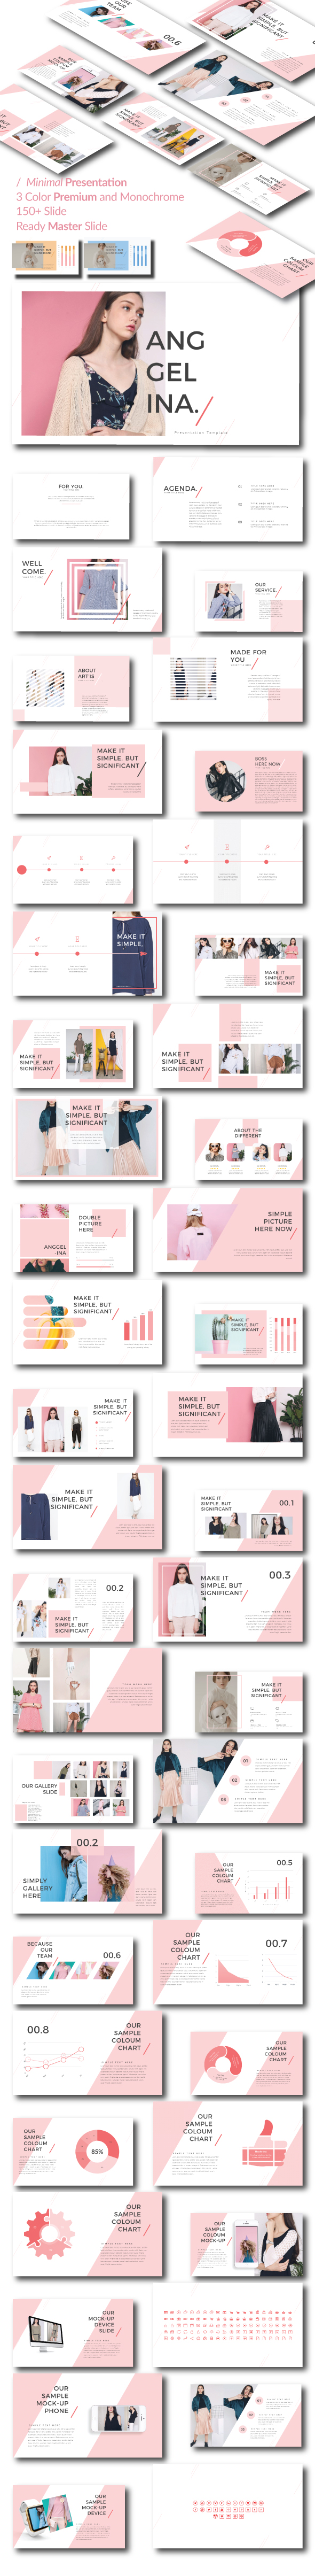 GraphicRiver Anggelina Google Slide Template 21089297